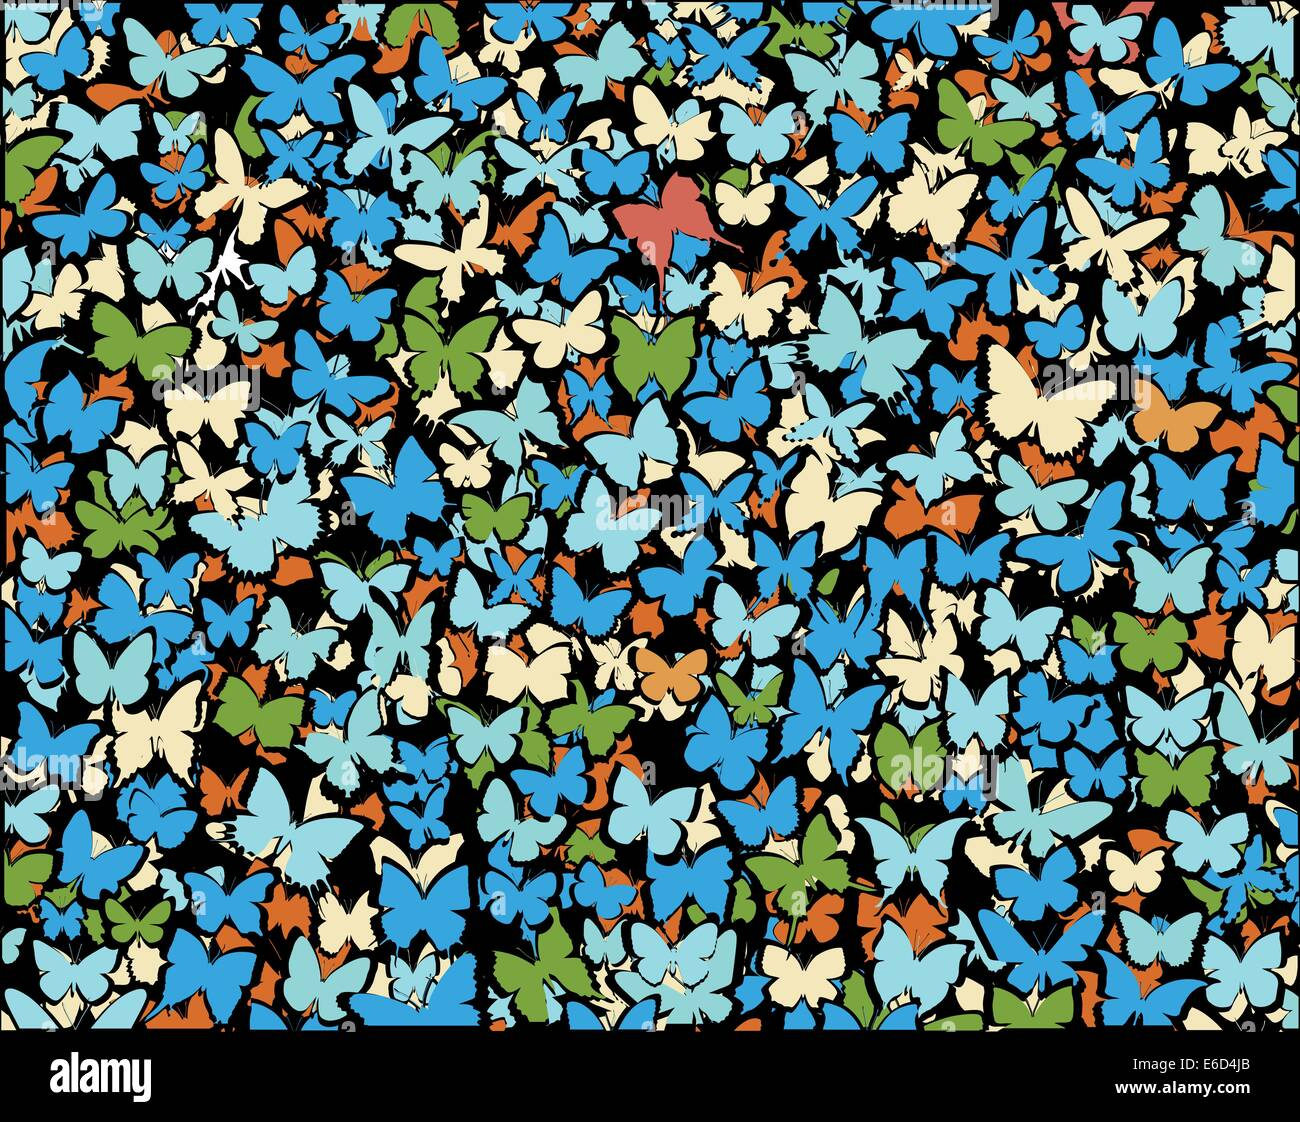 Background editable vector illustration of lots of butterflies - Stock Vector